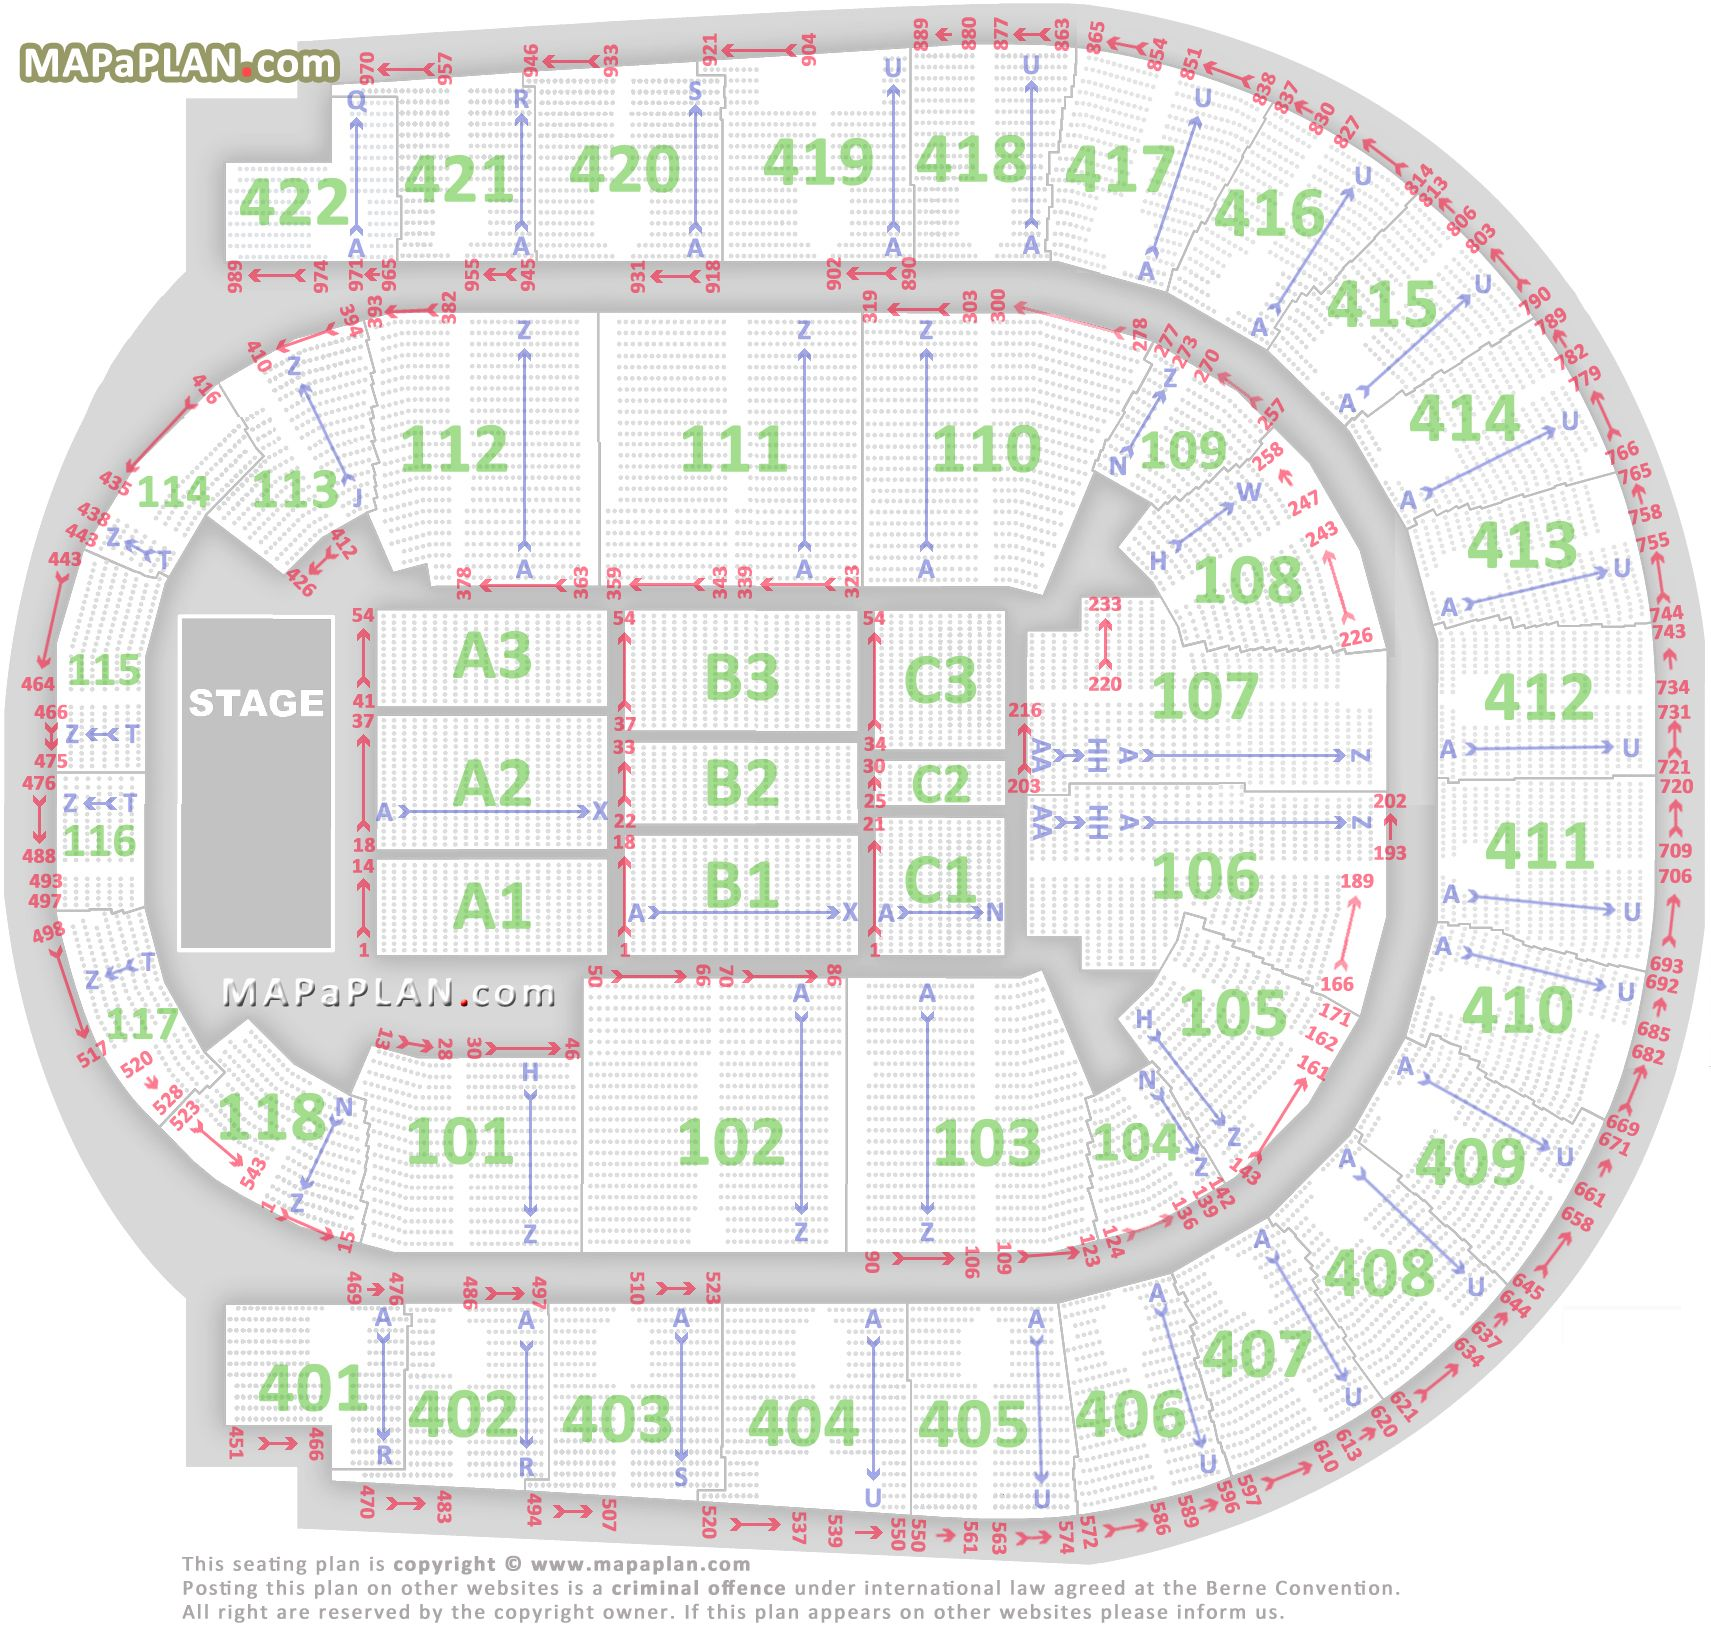 medium resolution of the o2 arena london seating plan detailed seats rows and blocks numbers chart